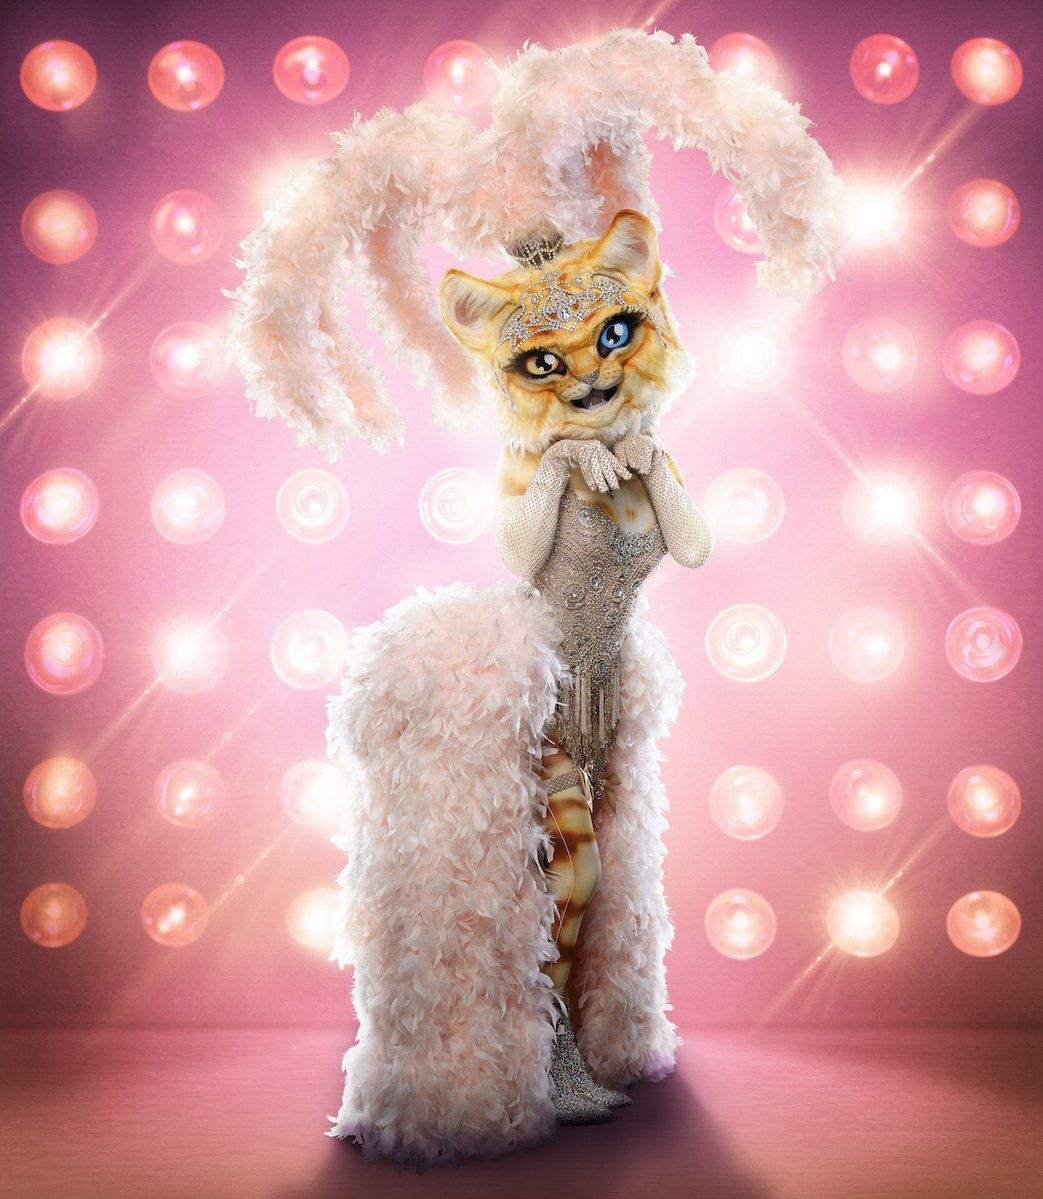 Just Tell Me: Who Is the Kitty on 'The Masked Singer' Season 3?